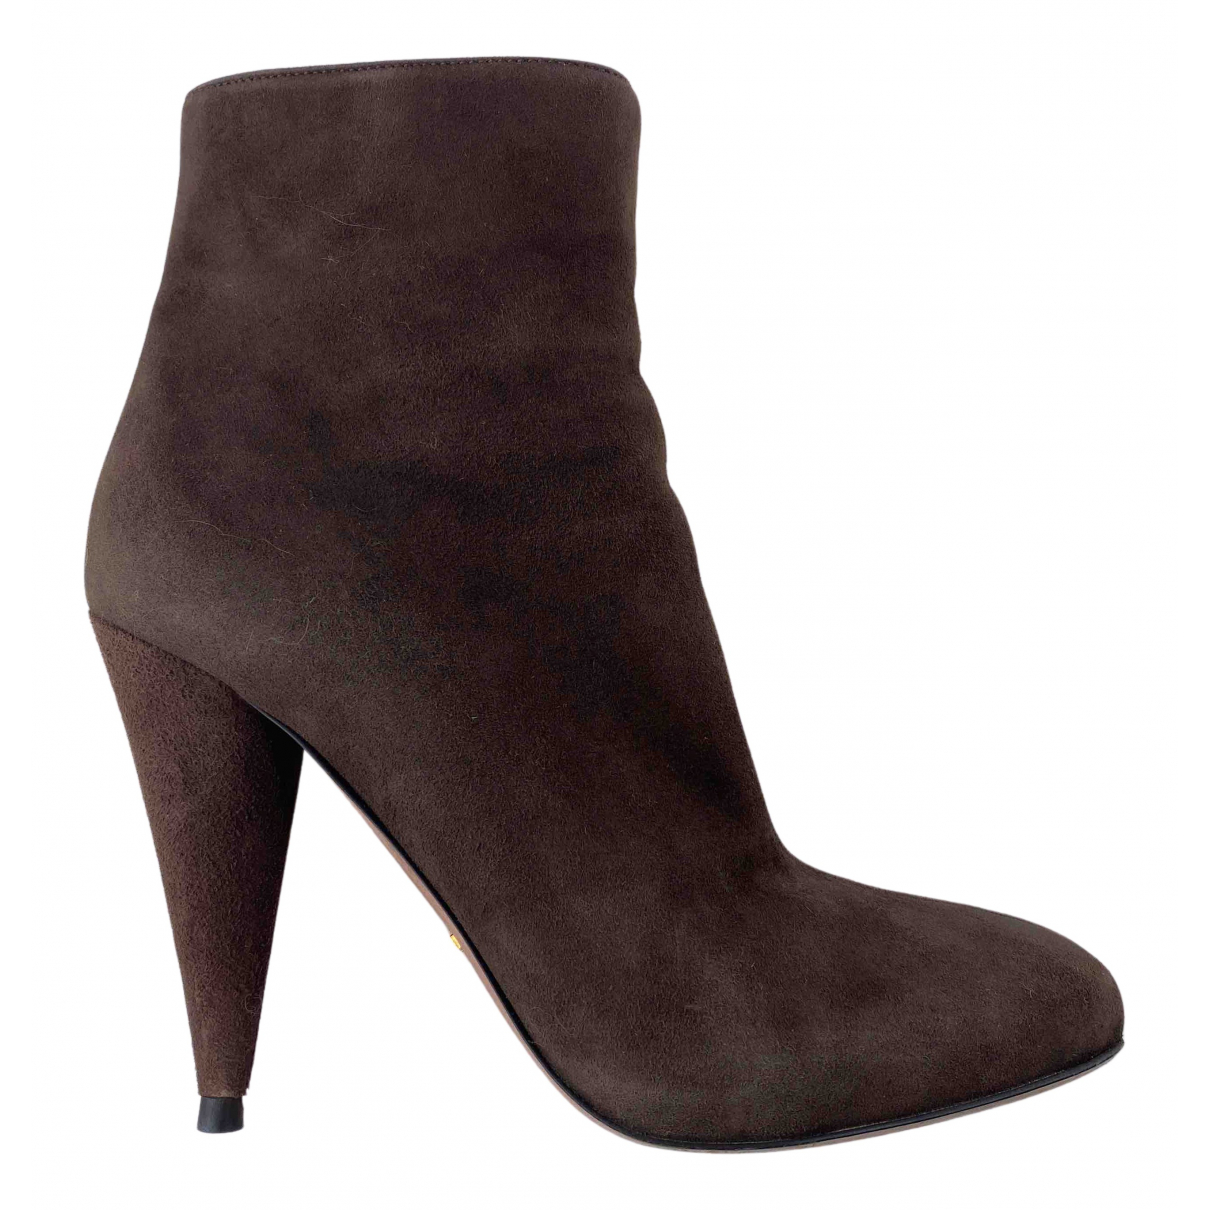 Prada N Brown Suede Ankle boots for Women 38 EU